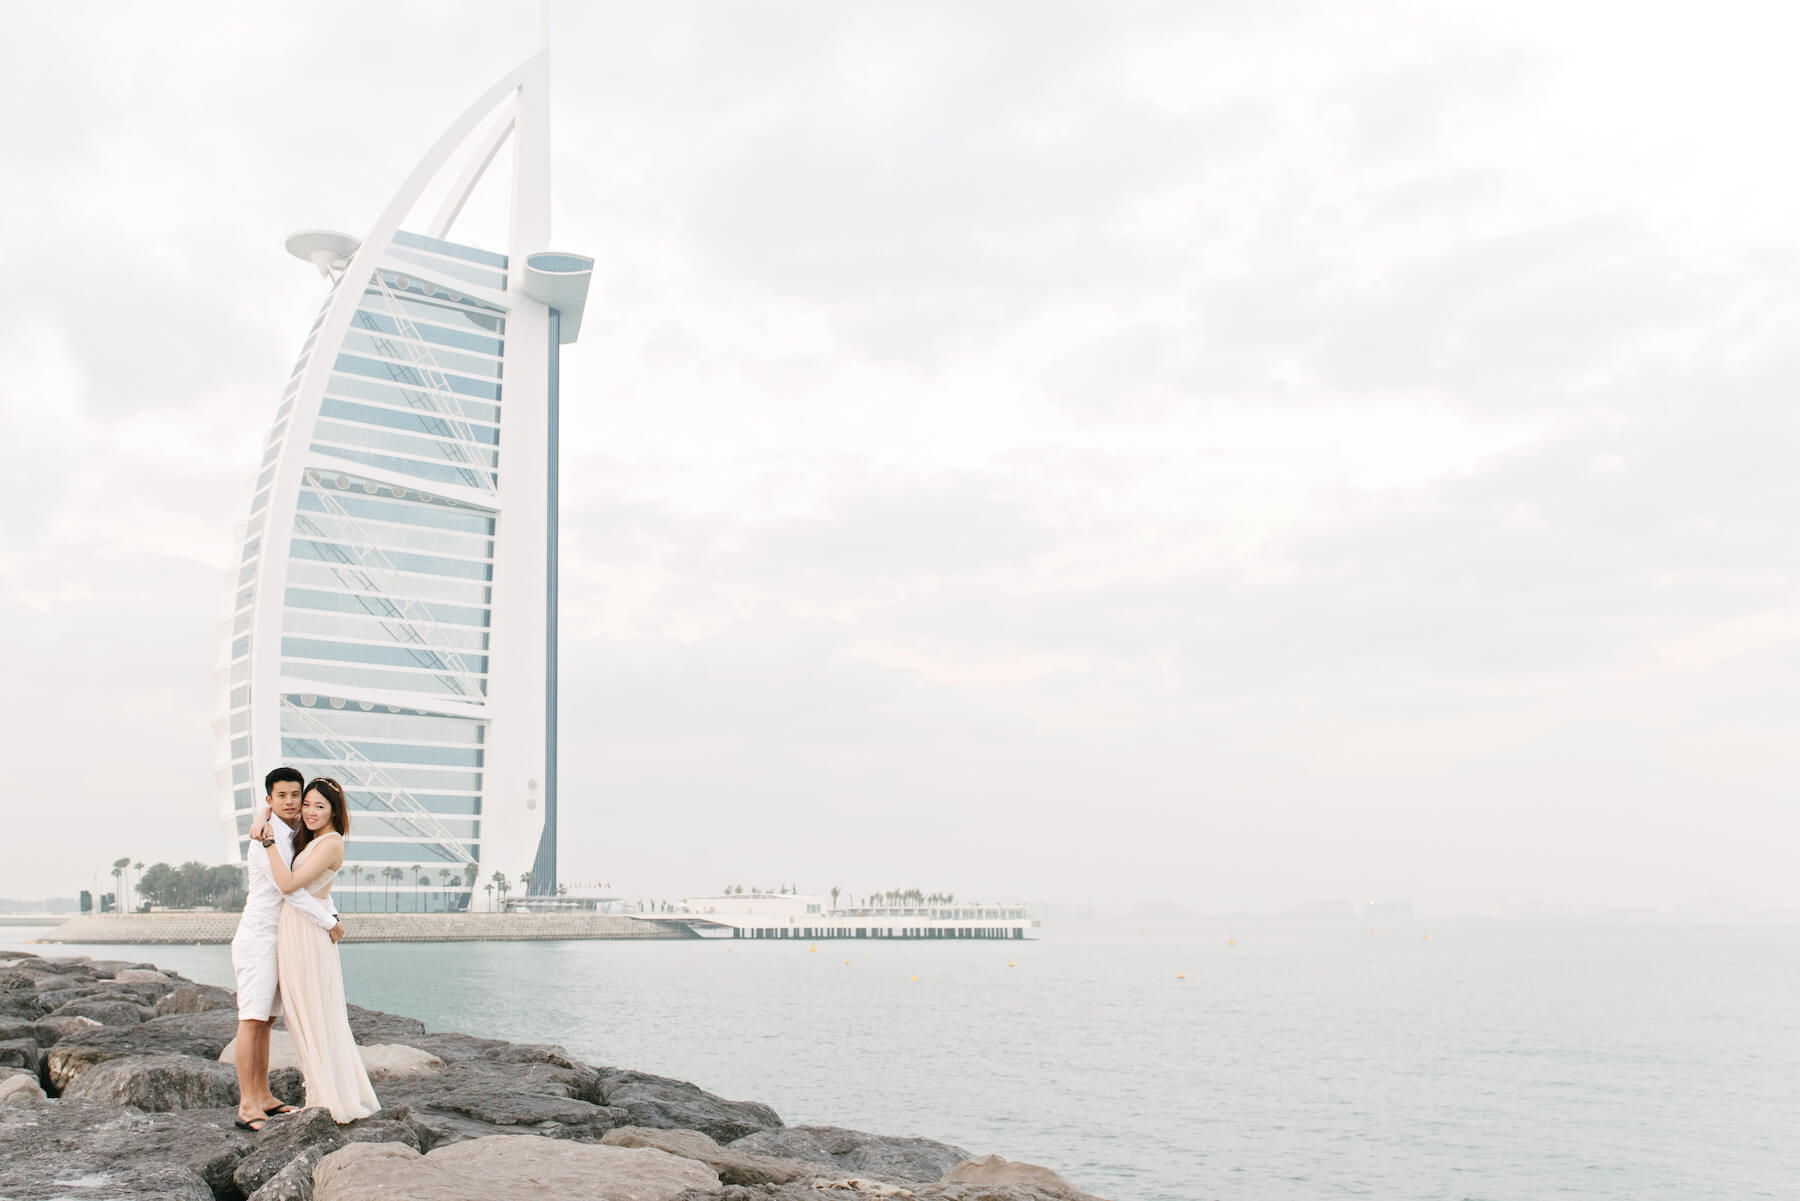 Couple hugging and standing on rocks near water with the Burj Al Arab Jumeirah skyscraper in the background in Dubai